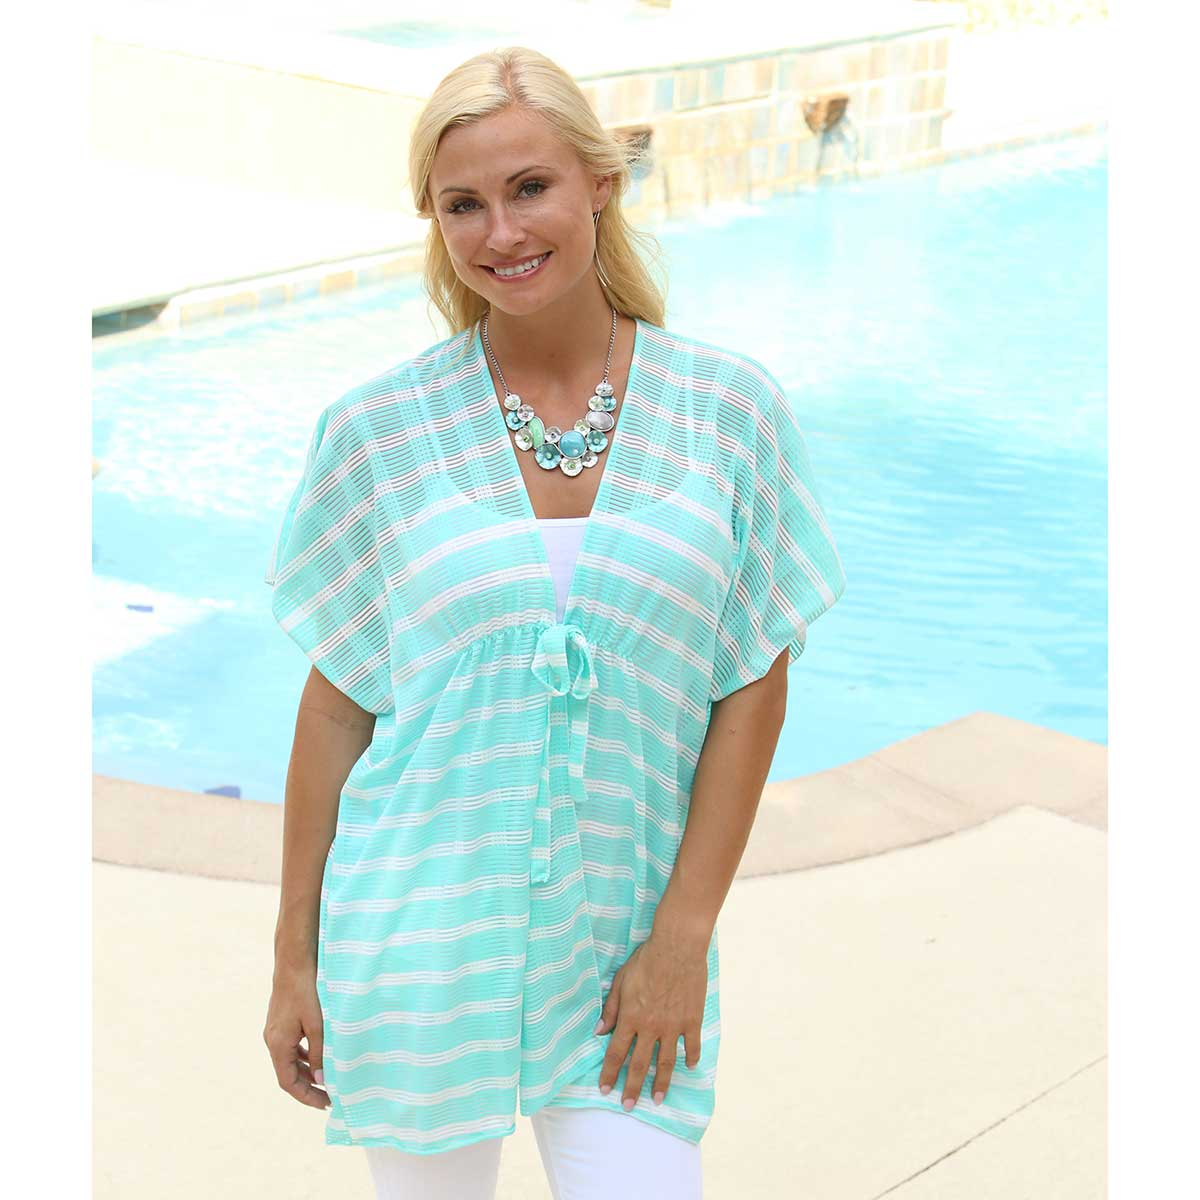 Teal and White Wavy Striped Tunic 50sp